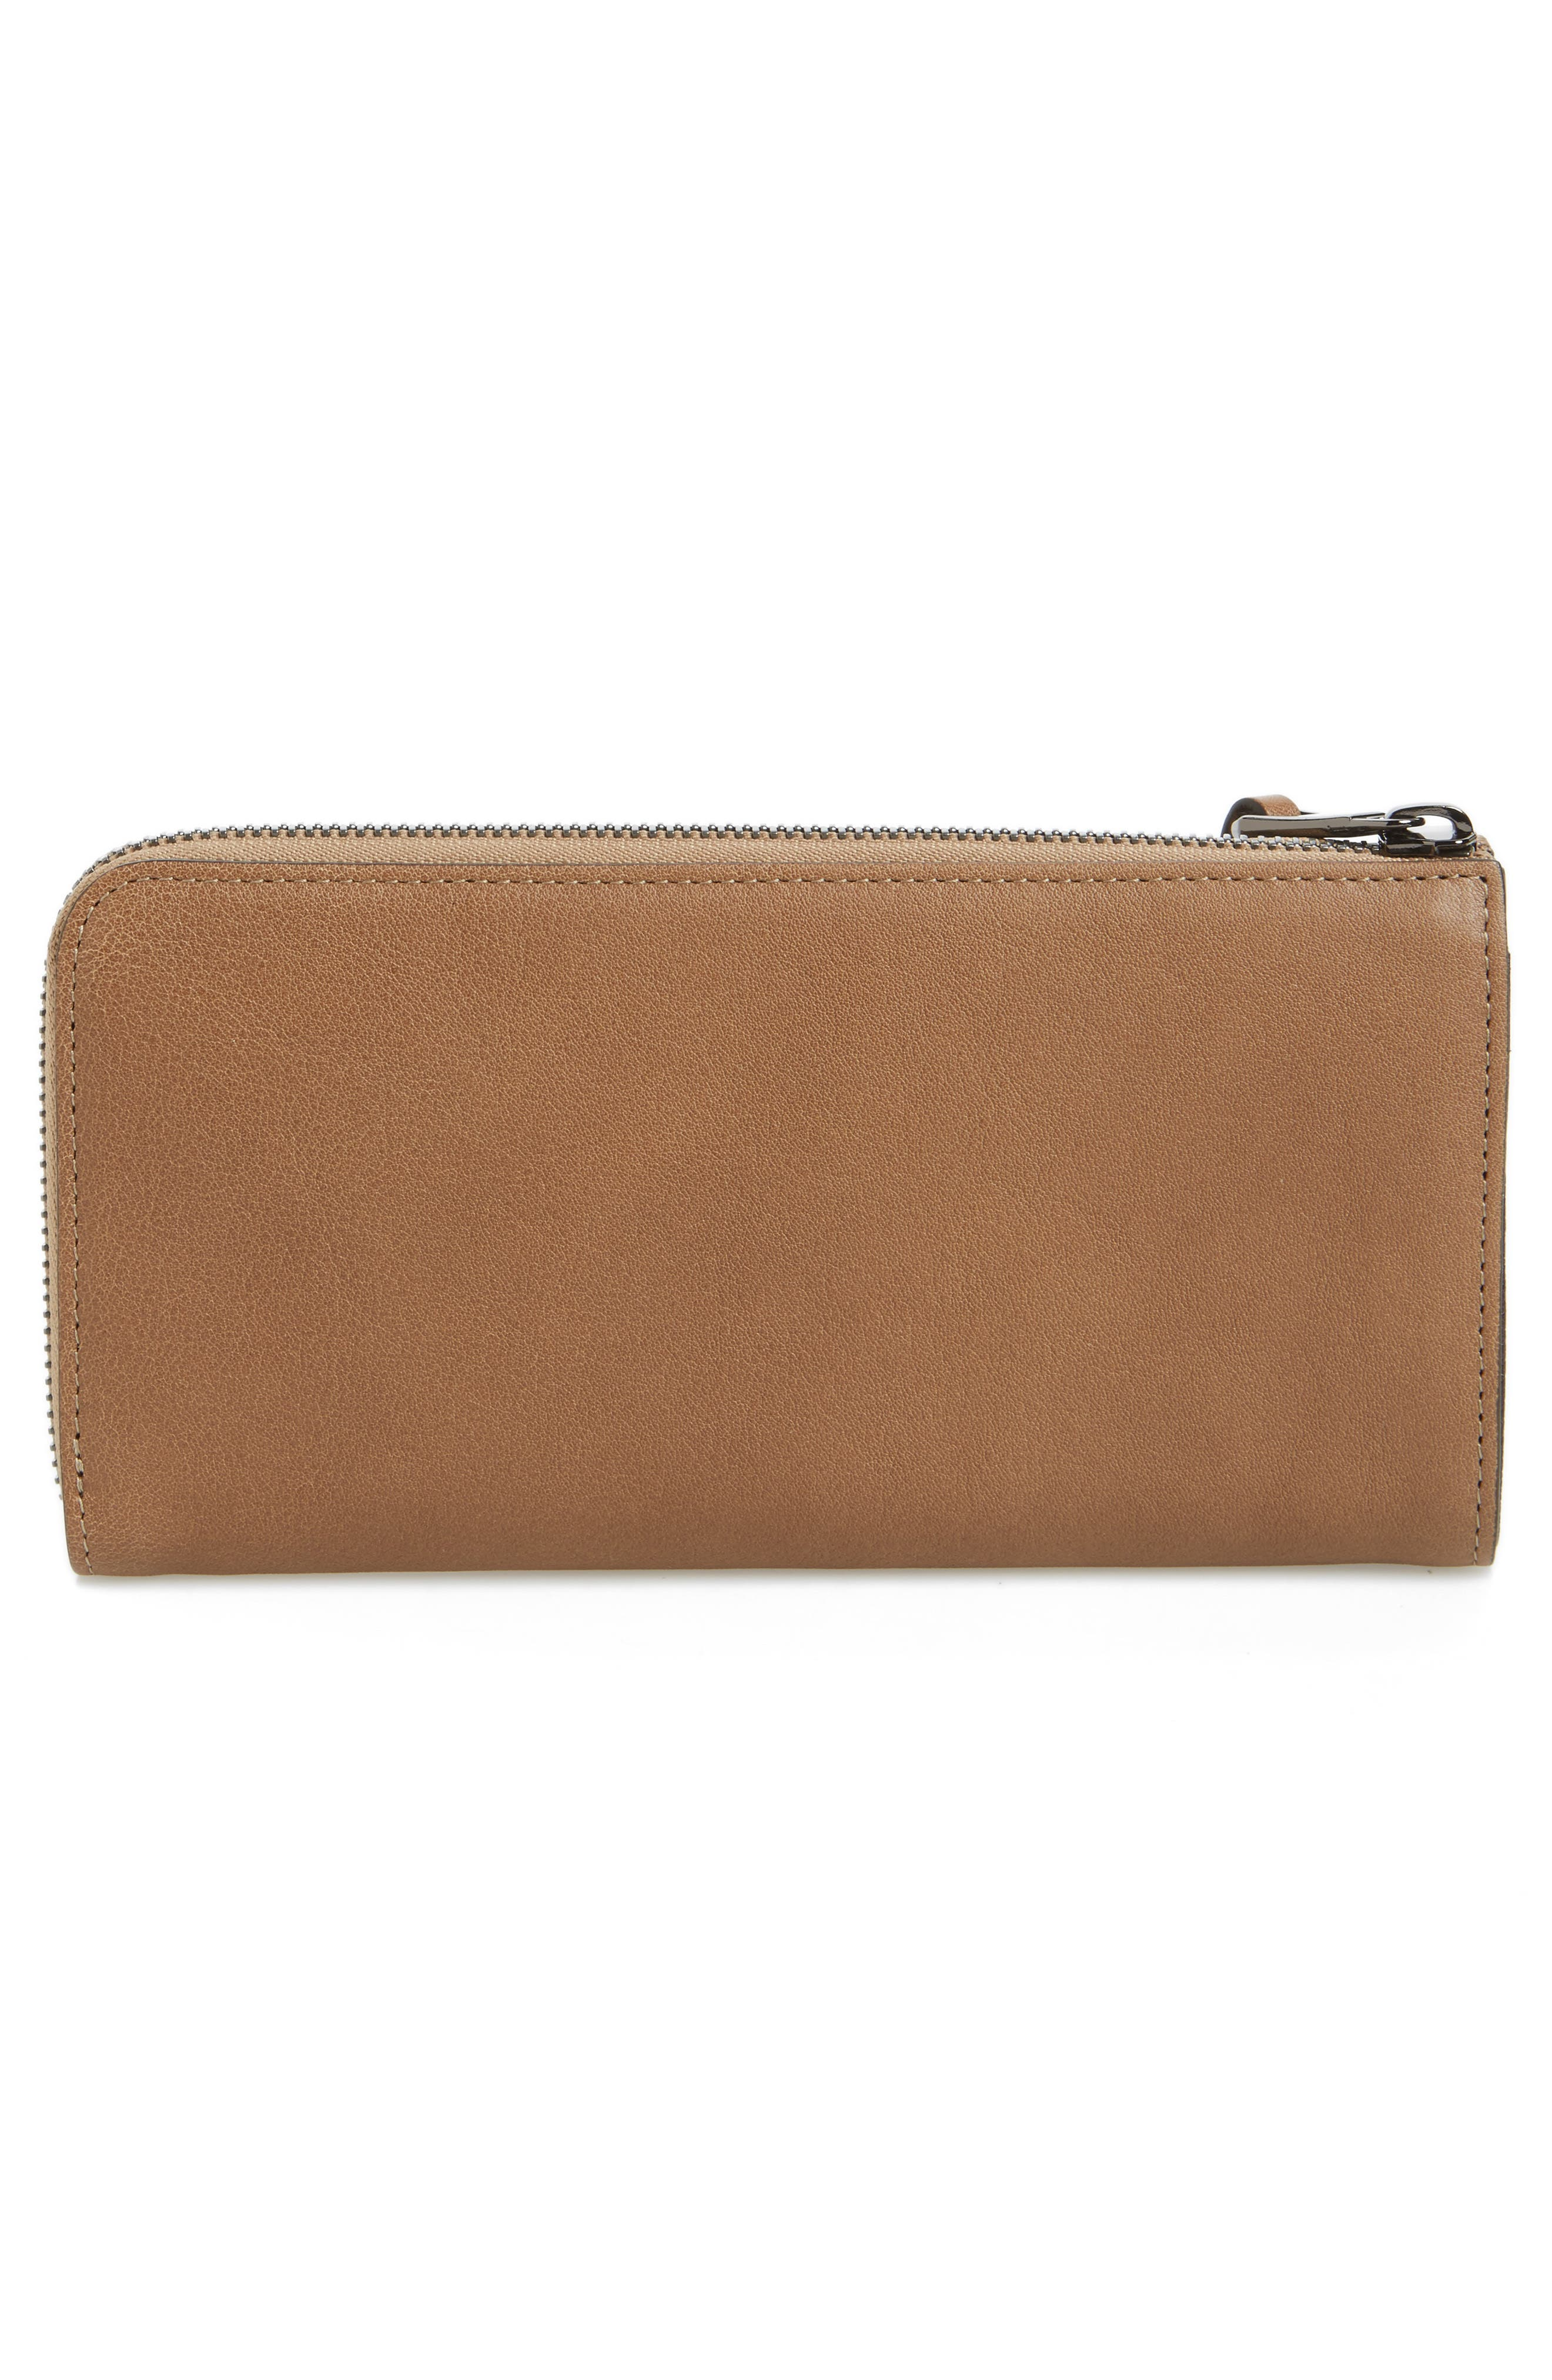 3D Leather Wallet,                             Alternate thumbnail 2, color,                             Taupe